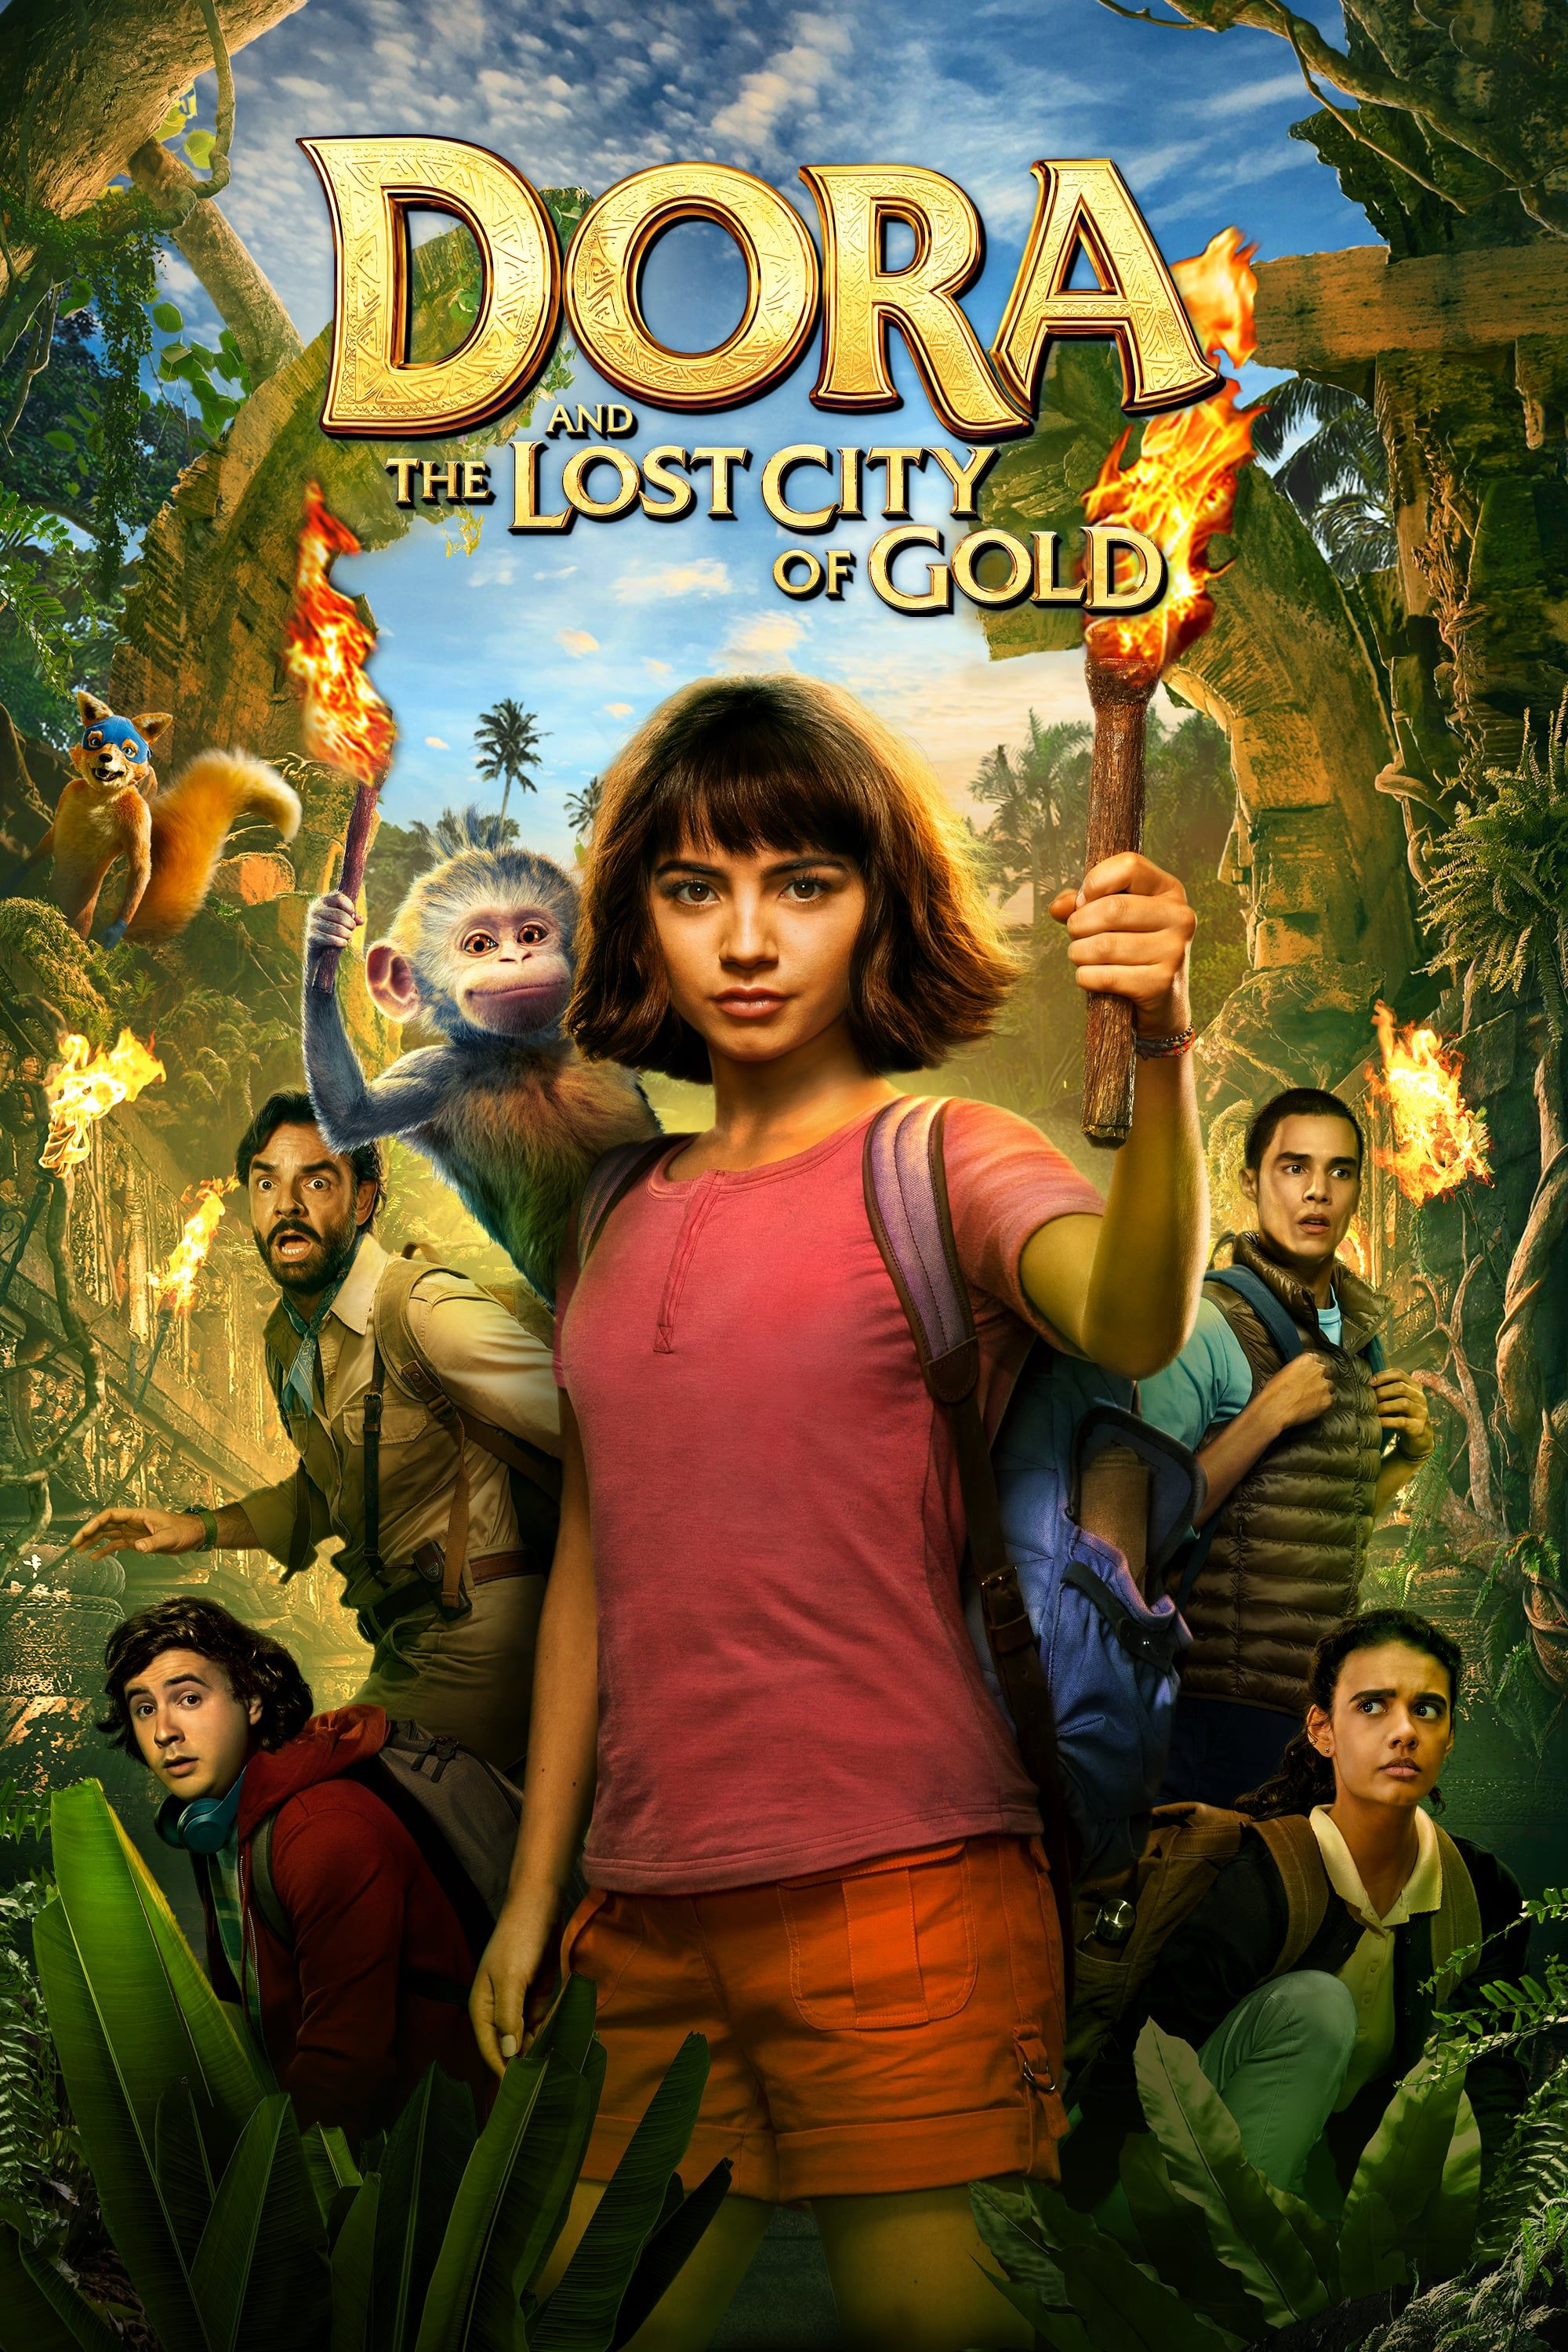 Eng Sub Dora And The Lost City Of Gold 9839 64 Online Streaming Full Movi Peliculas Completas Peliculas Peliculas Online